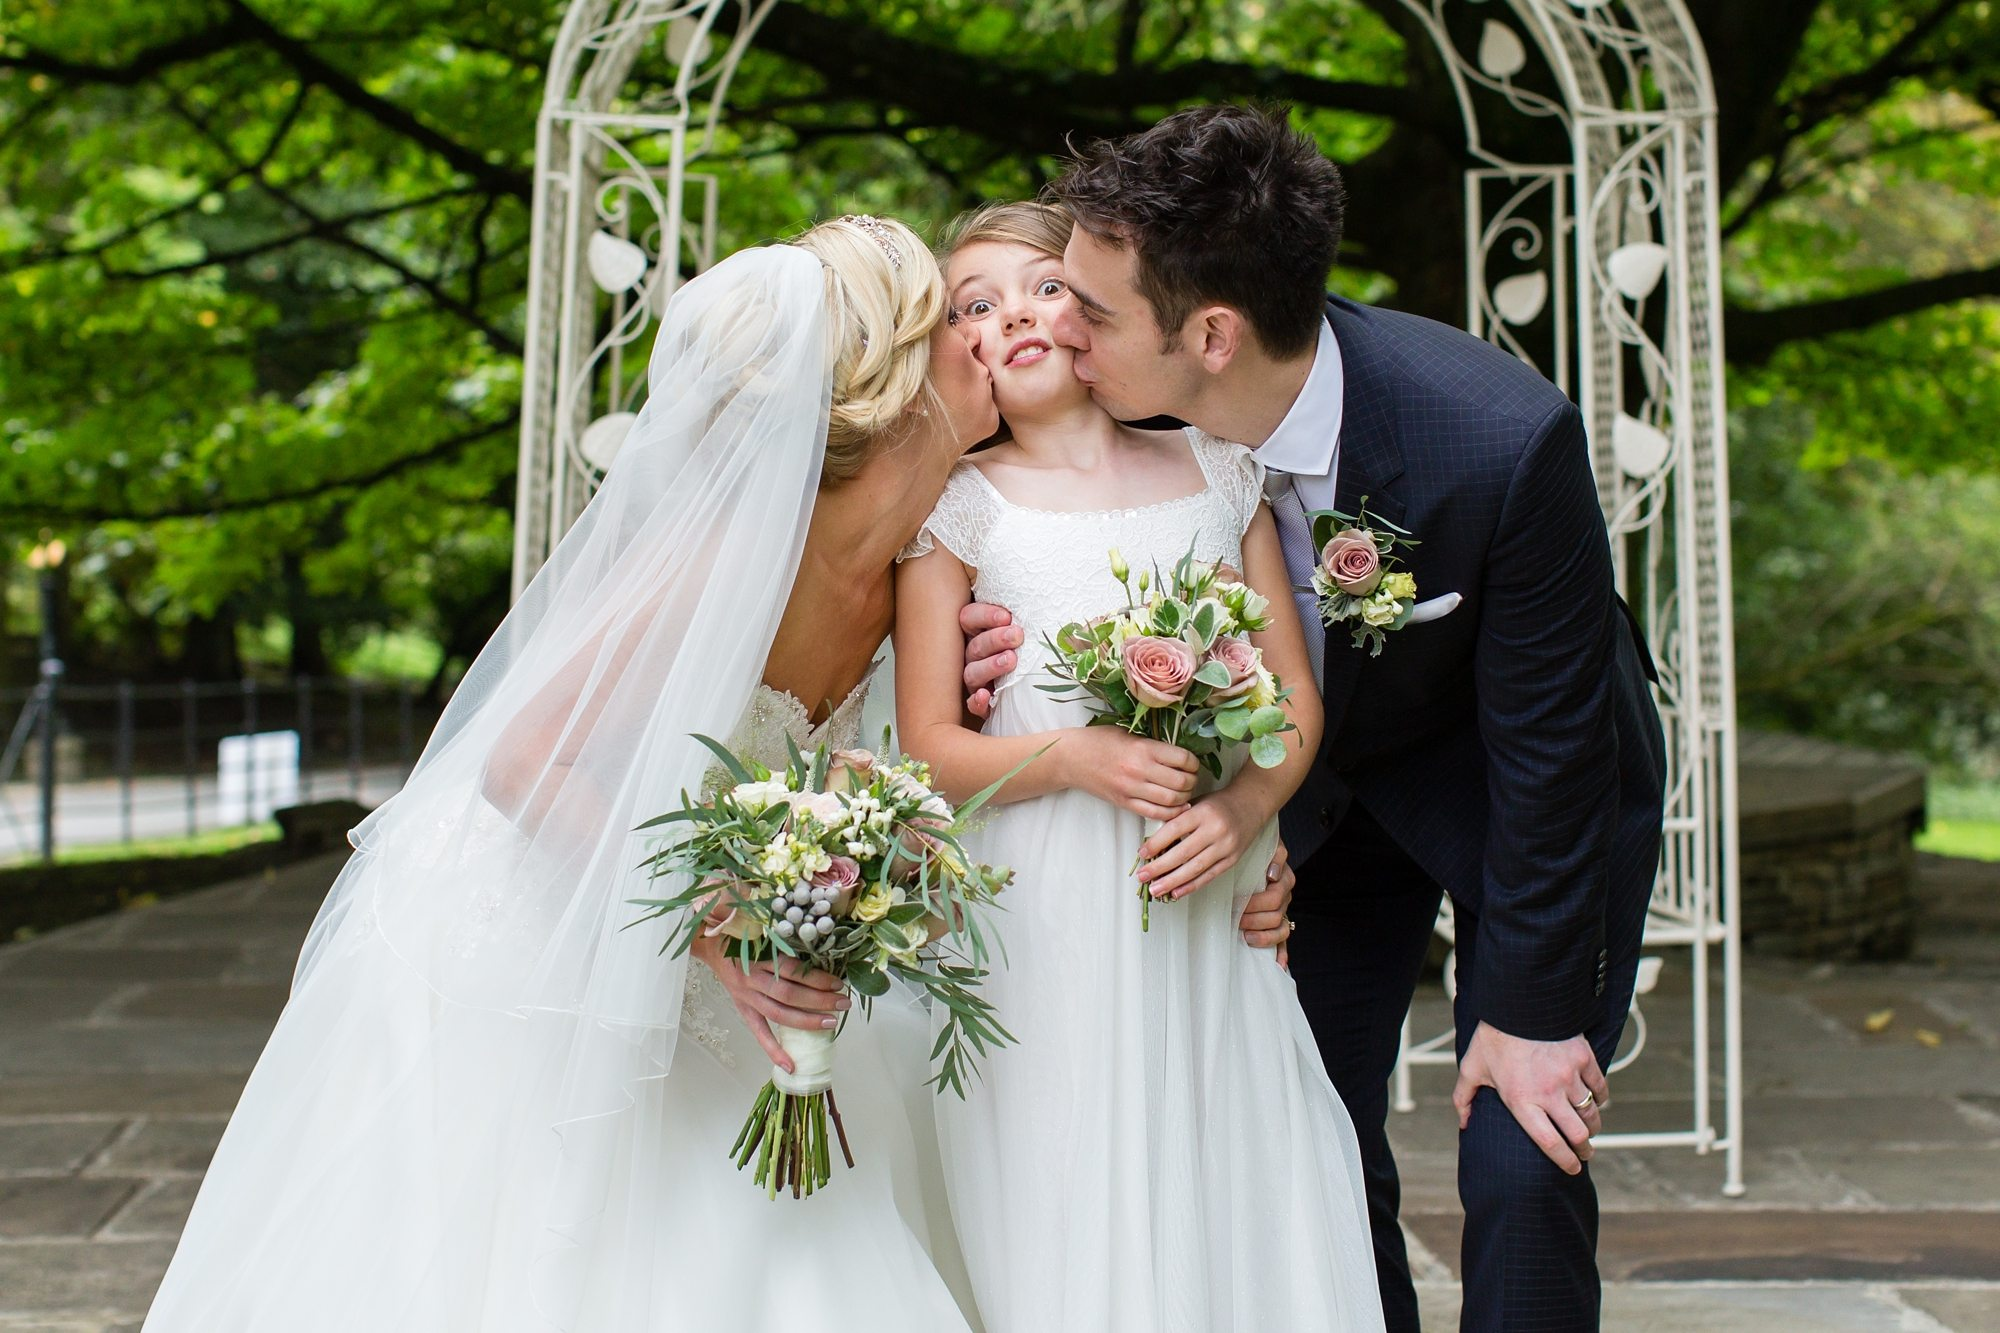 Funny photo of bride & groom kissing daughter